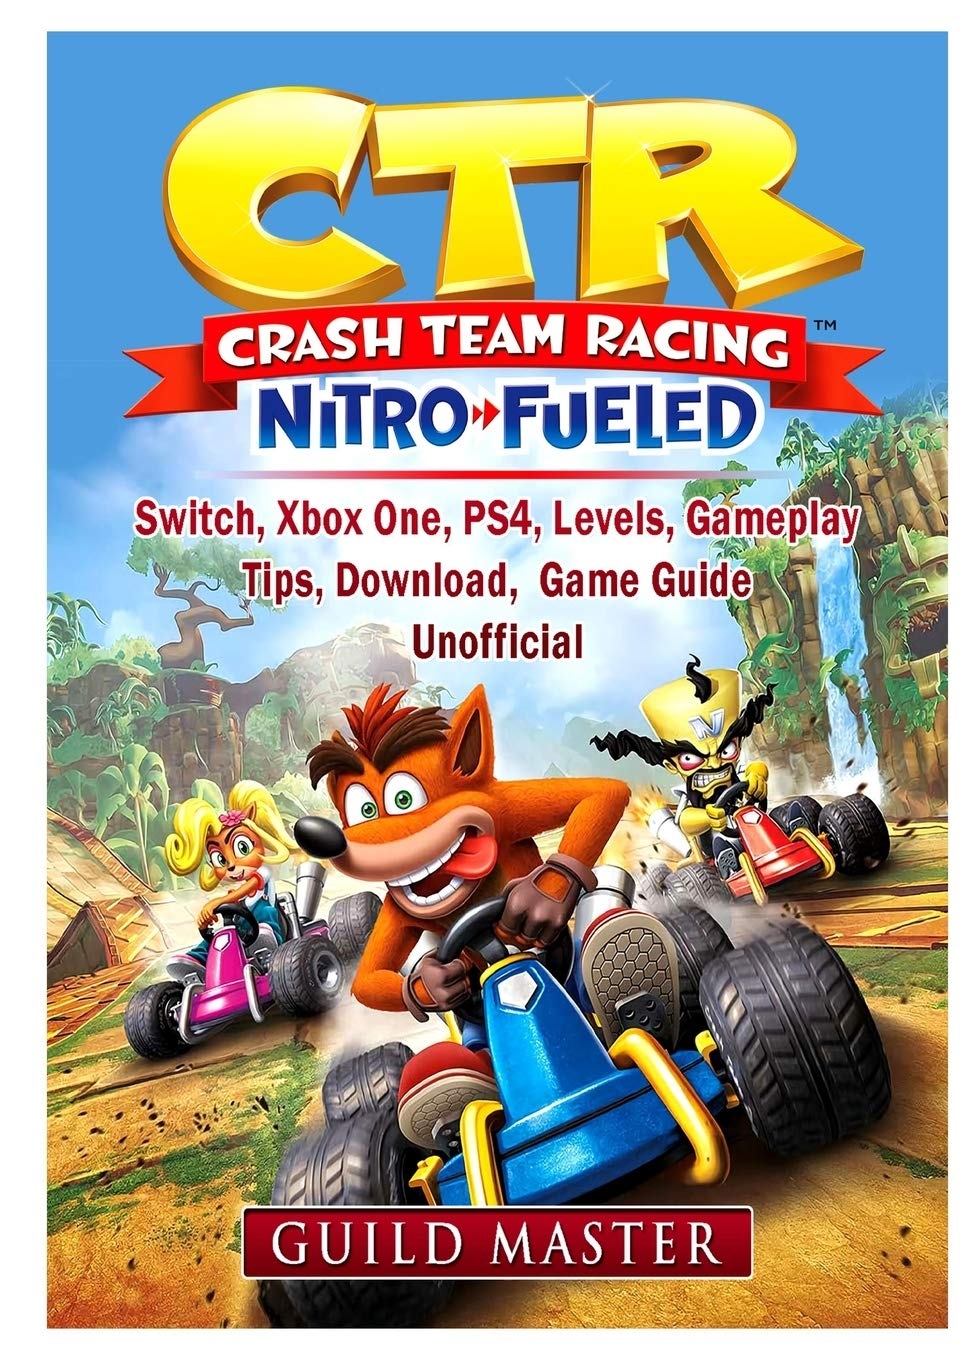 CTR Crash Team Racing Nitro Fueled, Switch, Xbox One, PS4, Levels, Gameplay, Tips, Download, Game Guide Unofficial: Amazon.es: Master, Guild: Libros en idiomas extranjeros